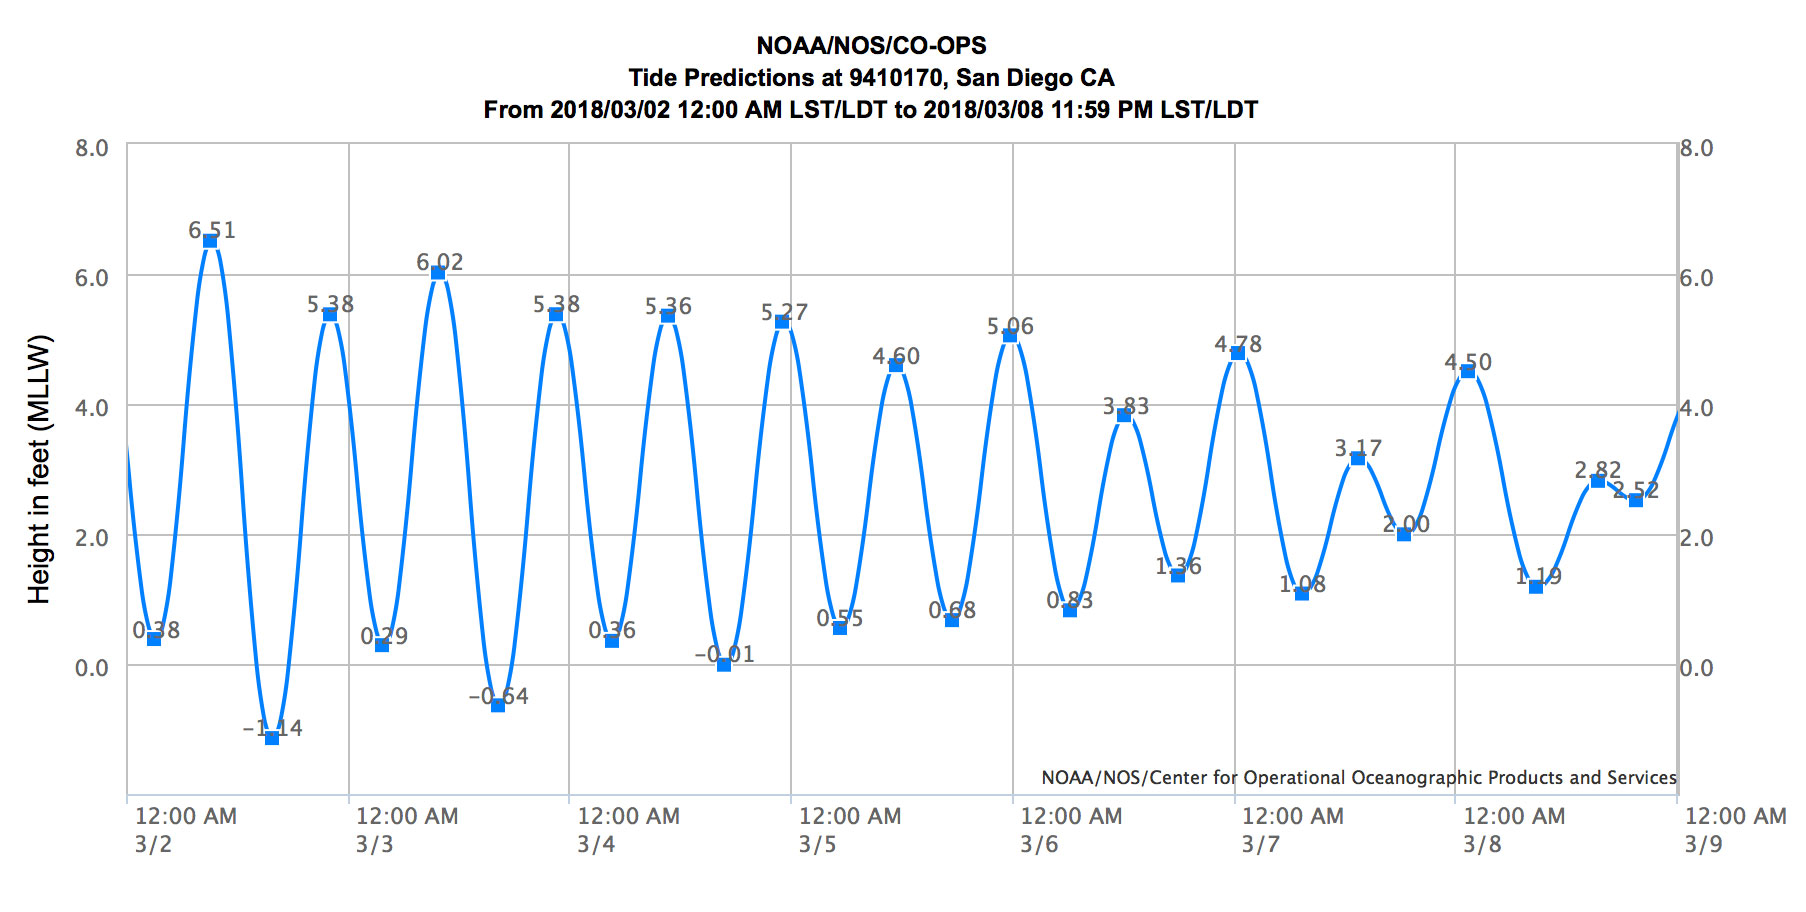 Texas tide chart image collections free any chart examples monthly tide chart image collections free any chart examples tide chart del mar choice image free nvjuhfo Images